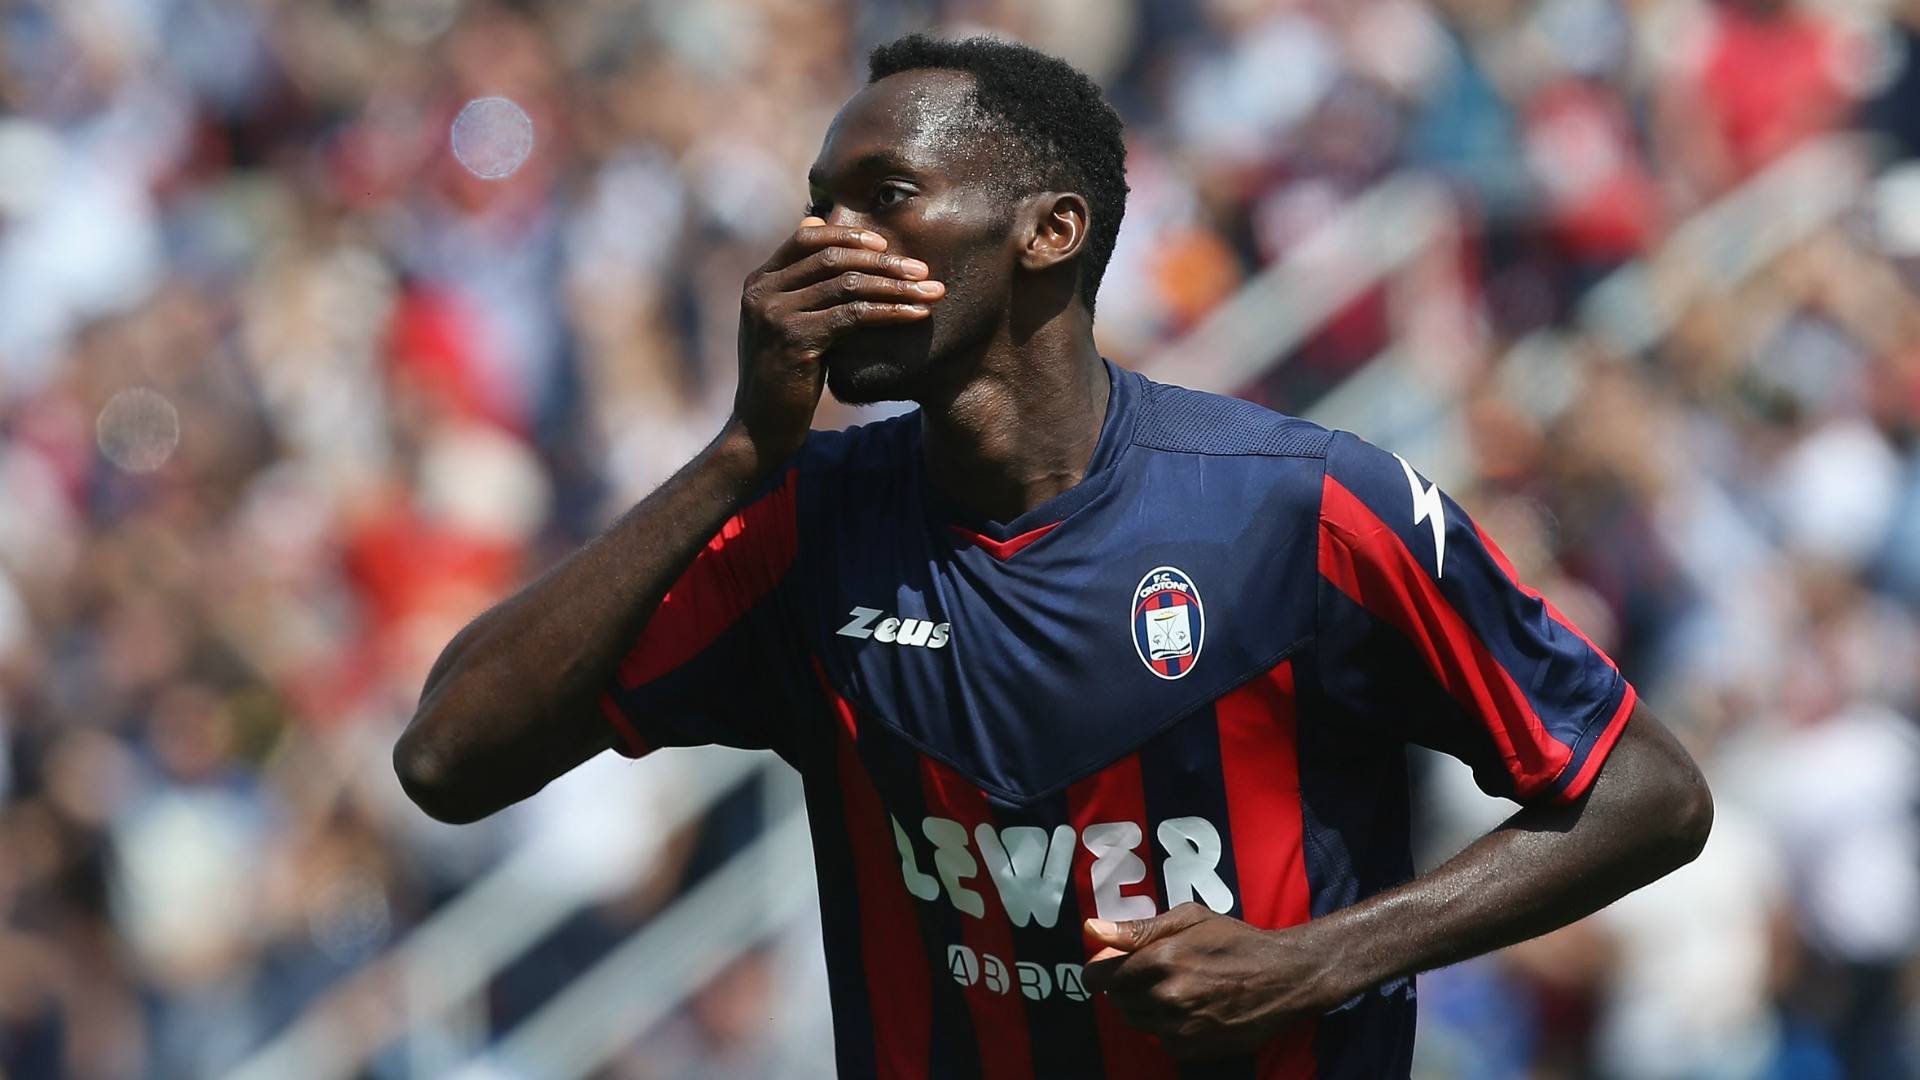 Simy boosts Crotone's Serie A promotion chances with hat-trick against Benevento